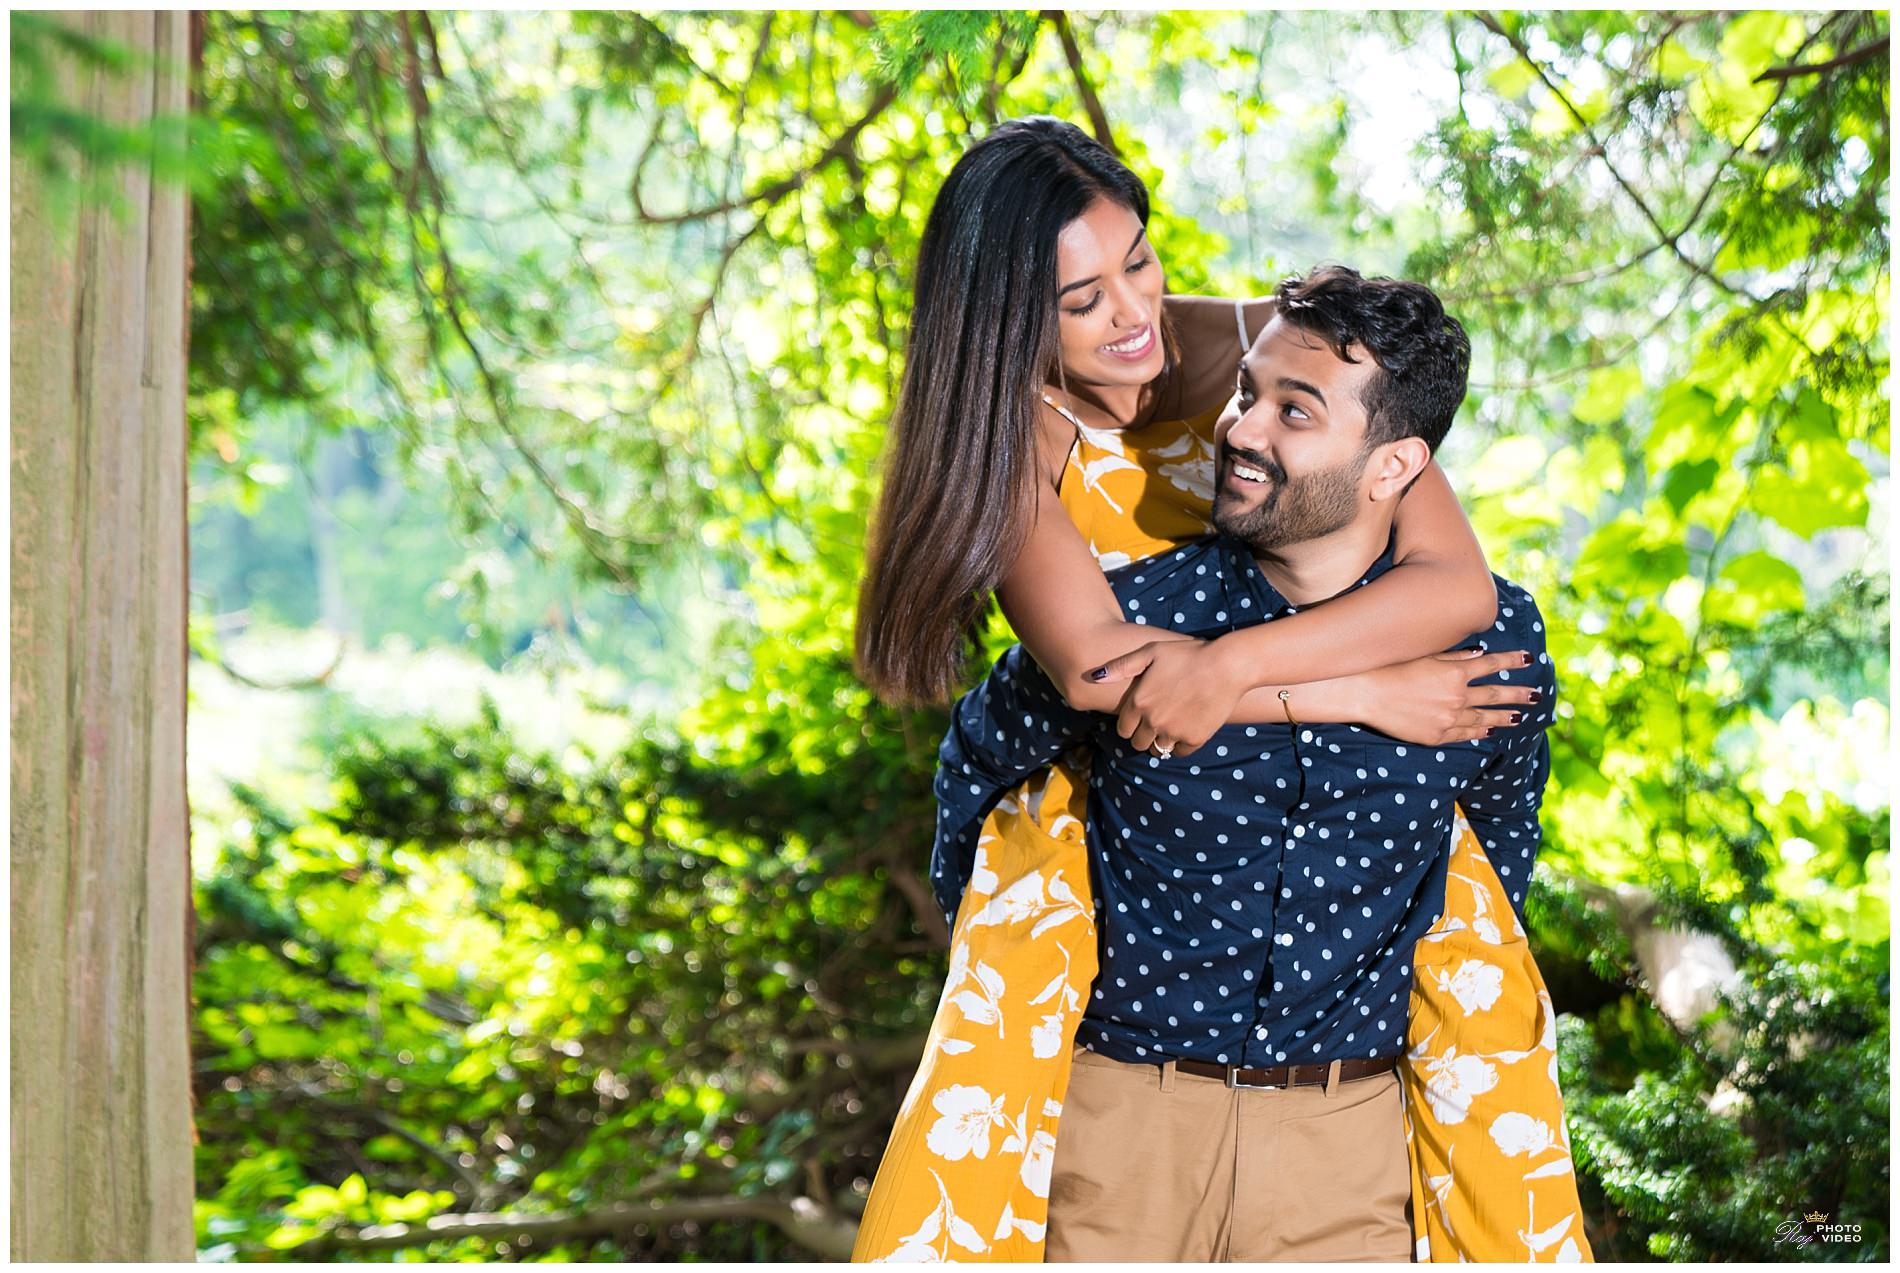 Elizabeth-Park-Rose-Garden-Hartford-CT-Engagement-Shoot-Pratiti-Suraj-25.jpg